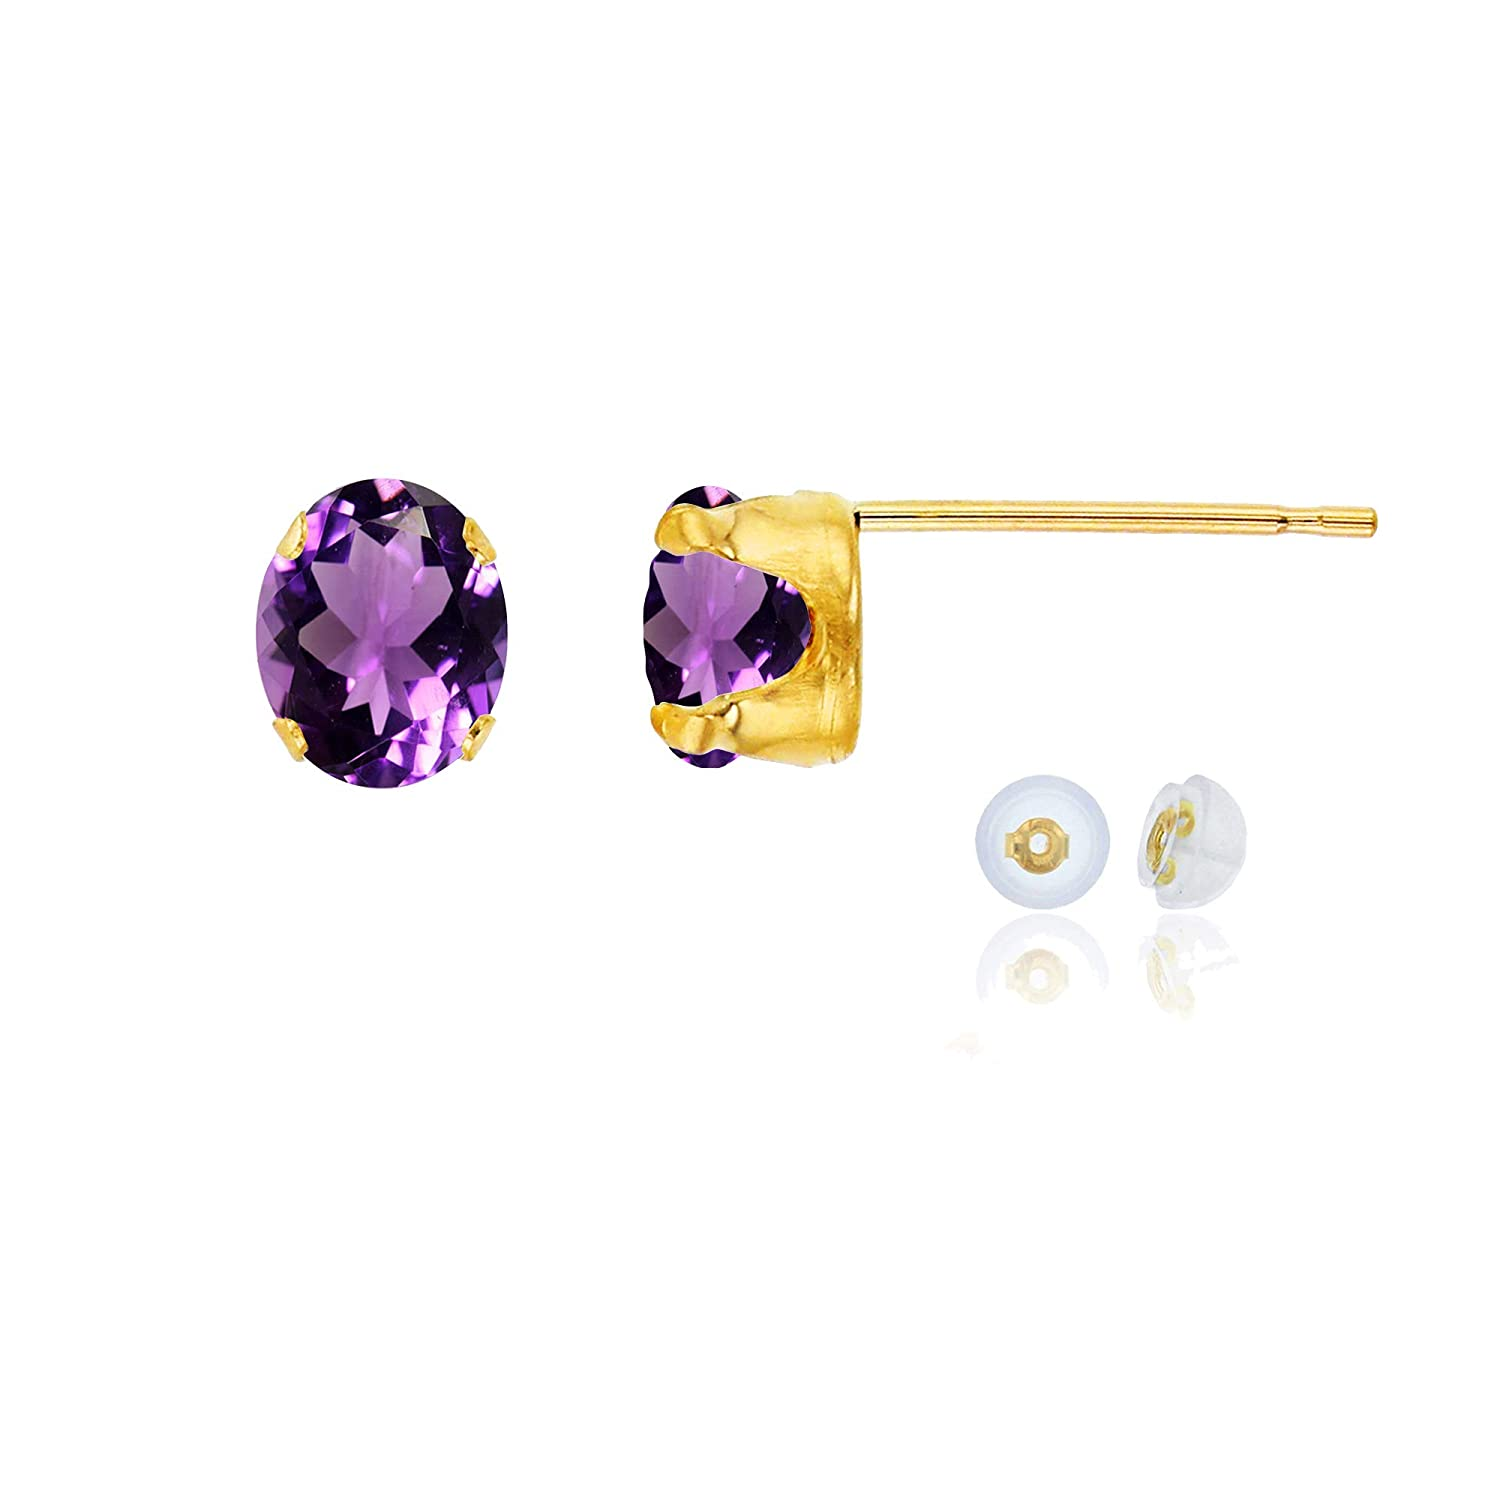 White or Rose Gold 7x5mm Oval Genuine Or Created Gemstone Birthstone Stud Earrings Solid 14K Gold or 14K Gold Plated 925 Sterling Silver Yellow